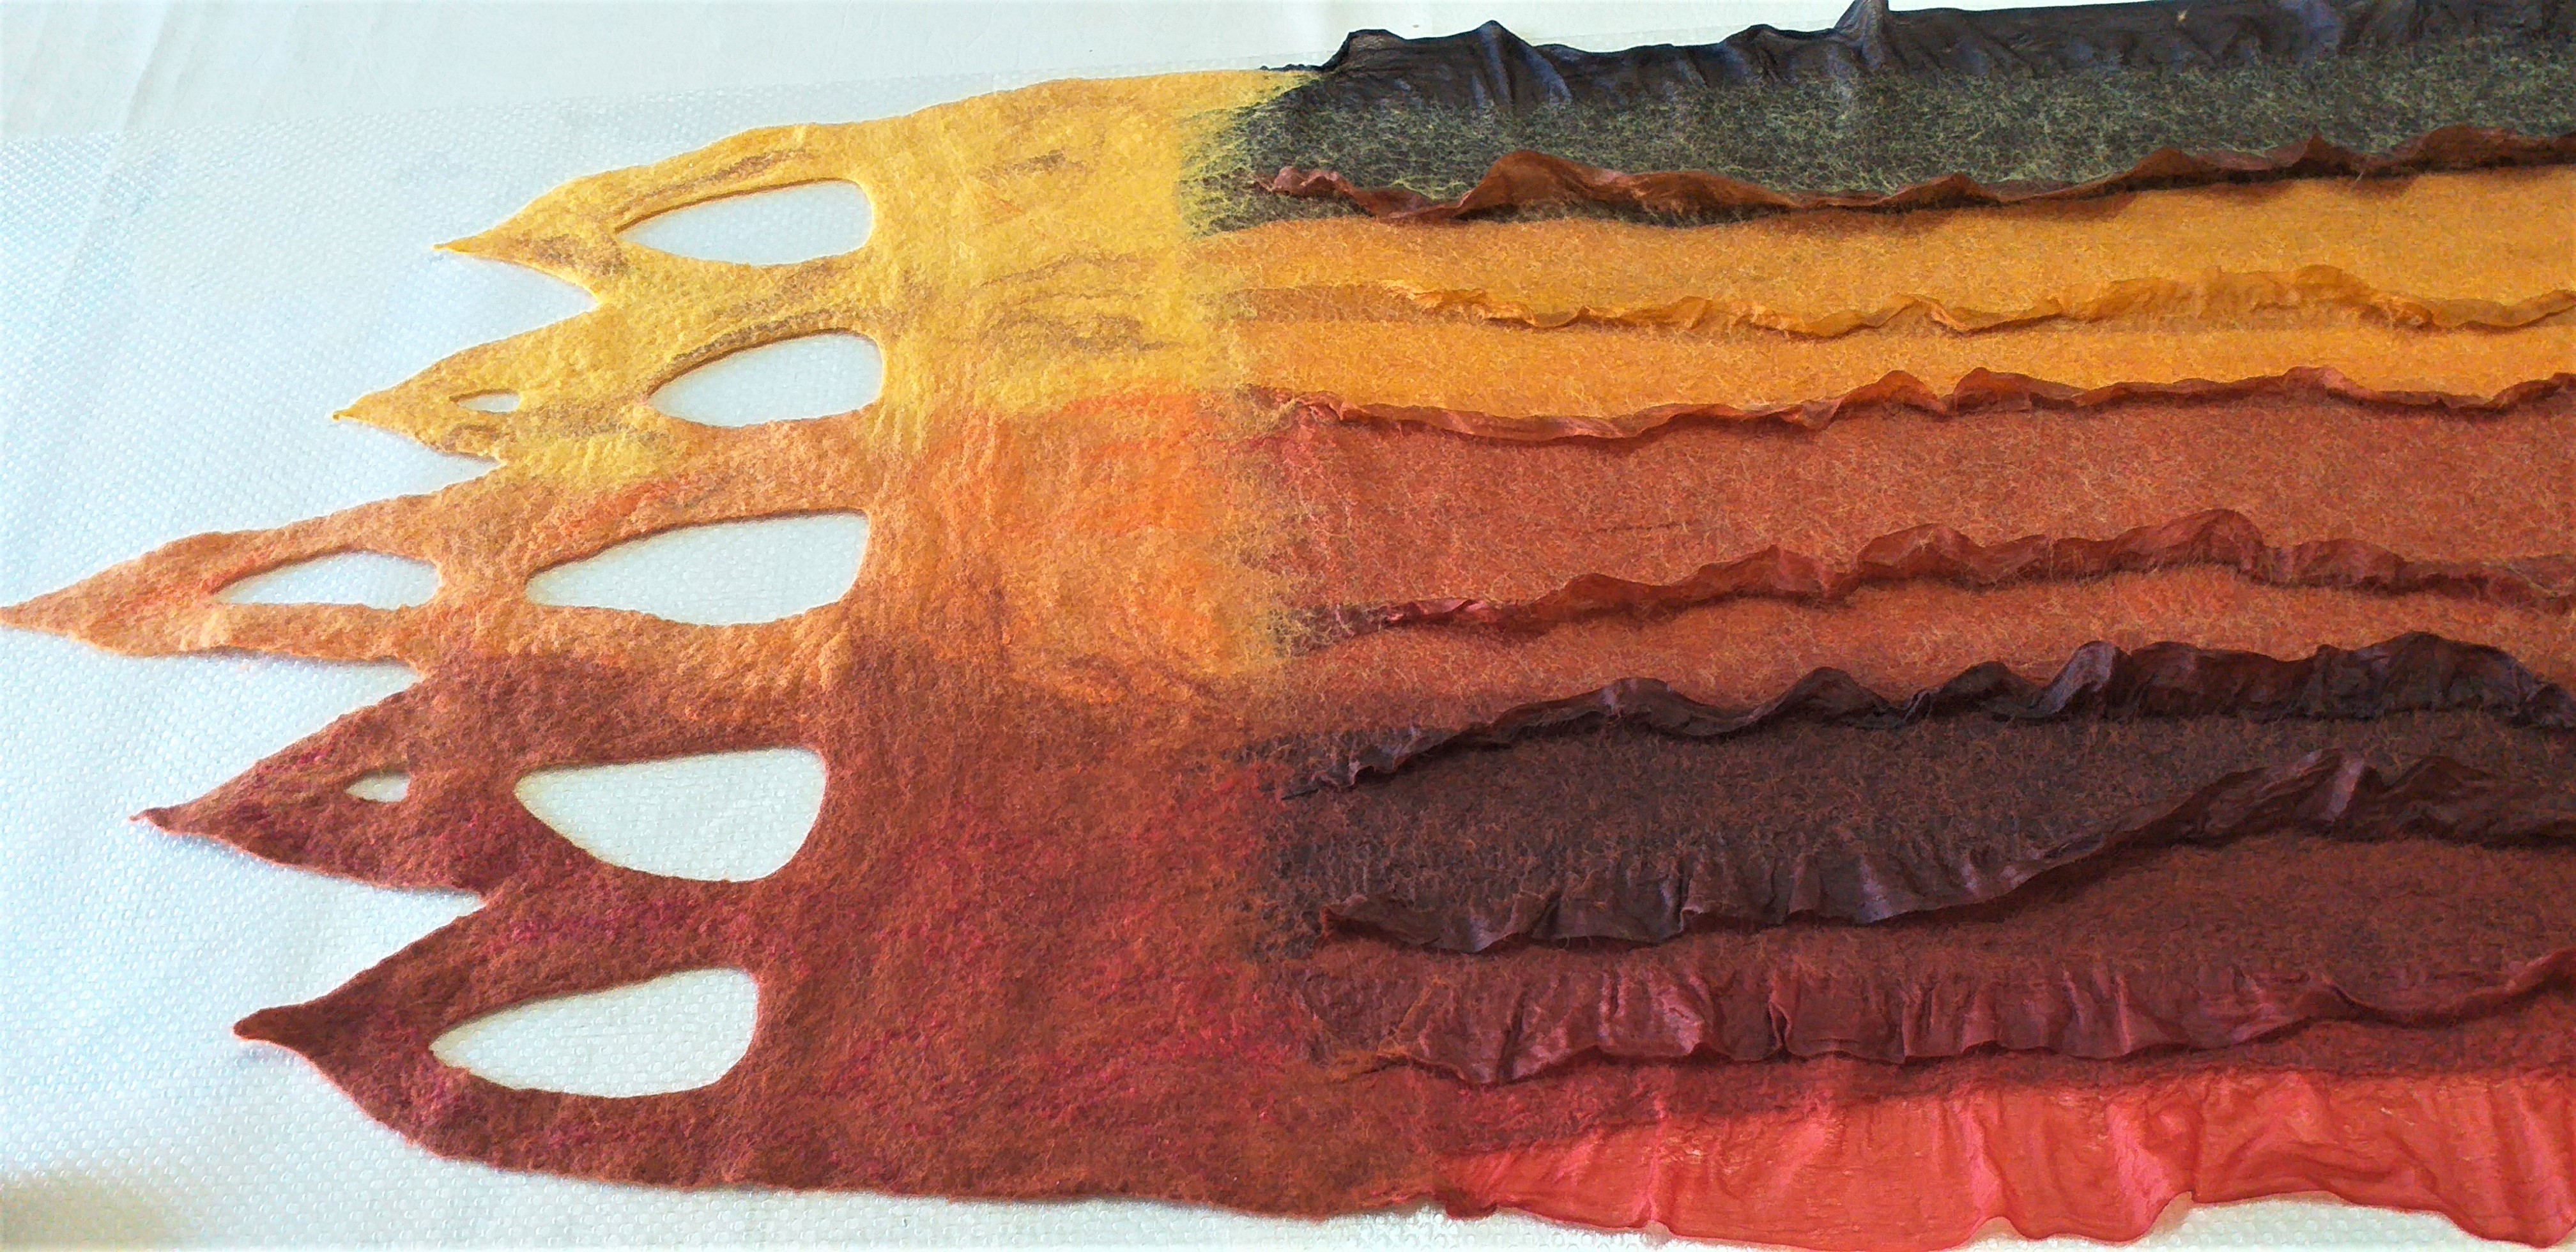 Part of a Nuno Felted shawl made by Christelle at Magic Wool Art and Craft Studio in Worcestershire